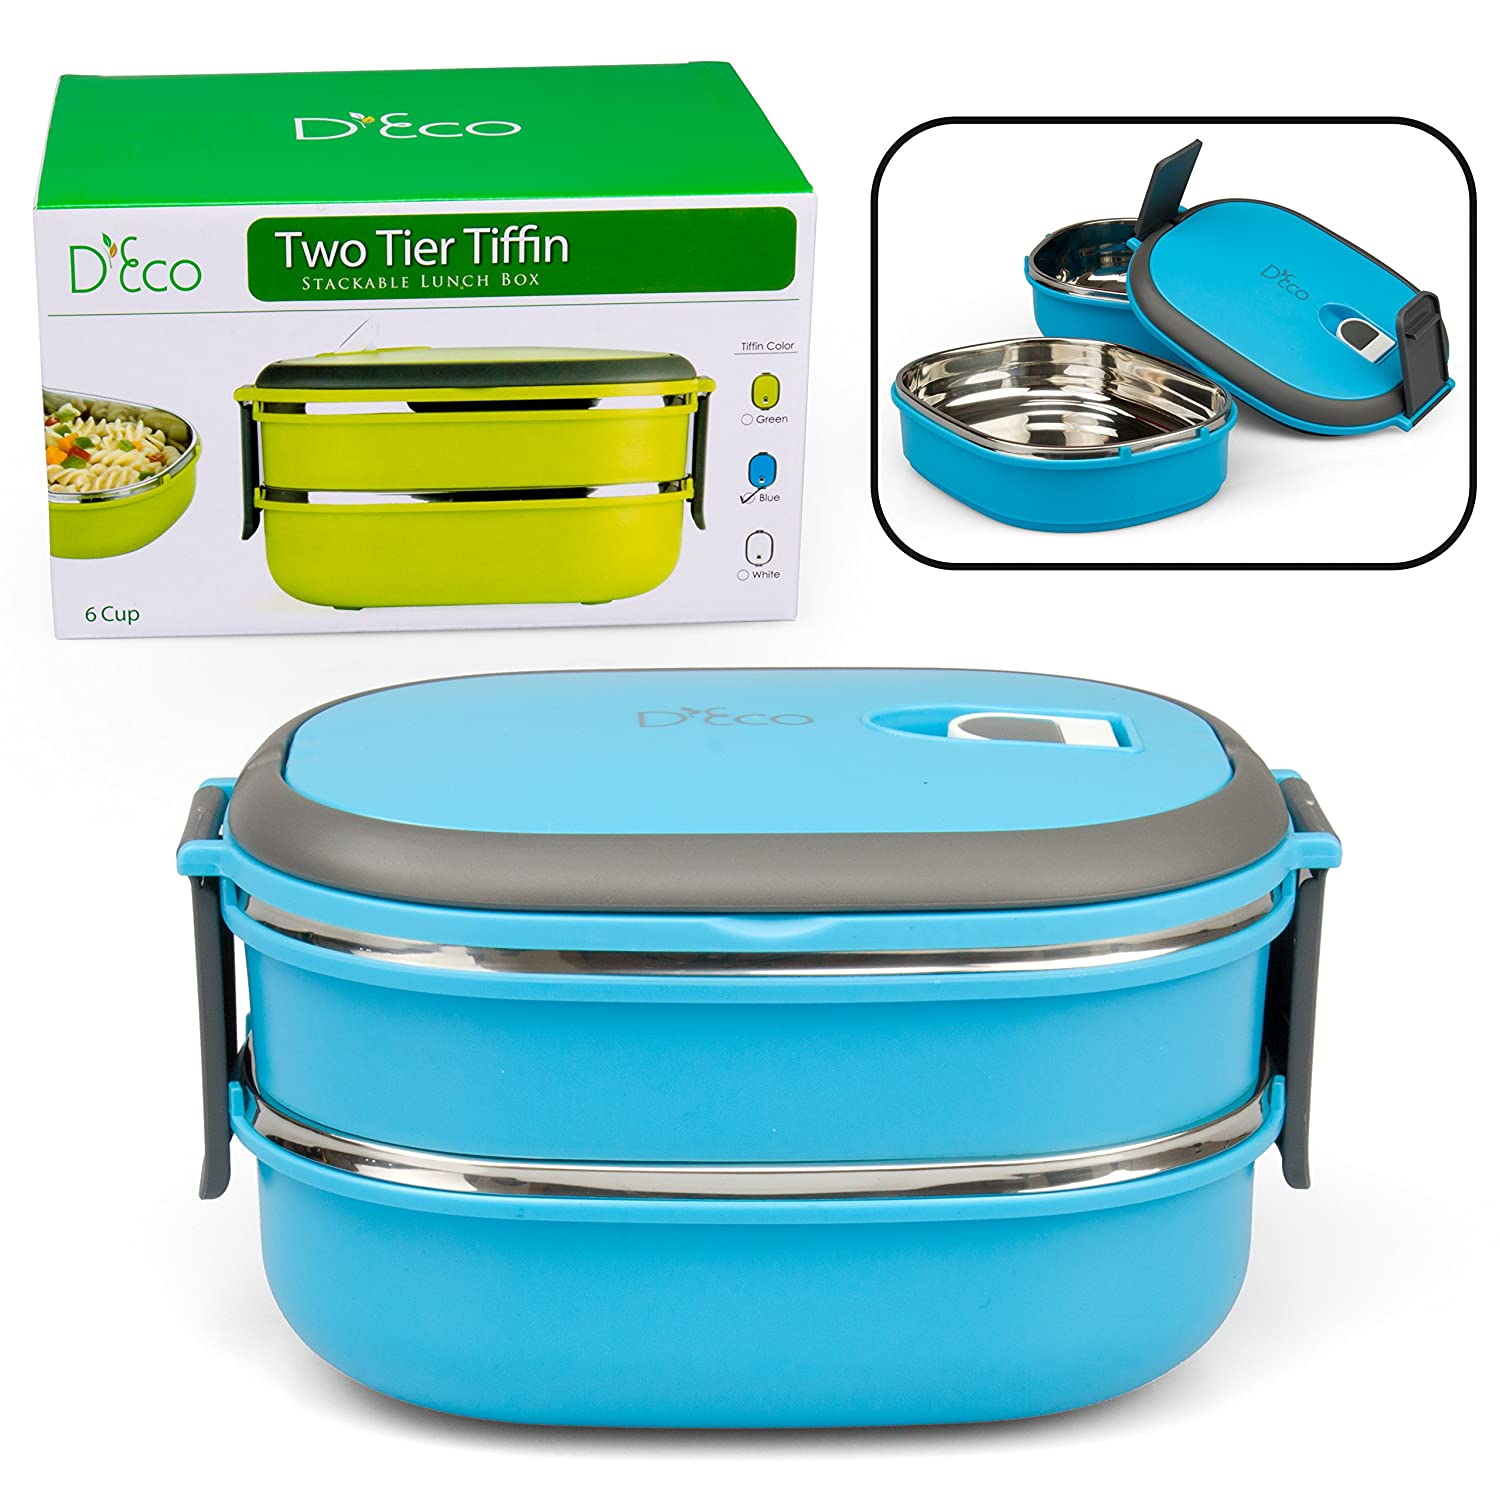 Stacking Lunch Box - Oval Two Tier Tiffin with Vacuum Seal Lid and Stainless Steel Interior